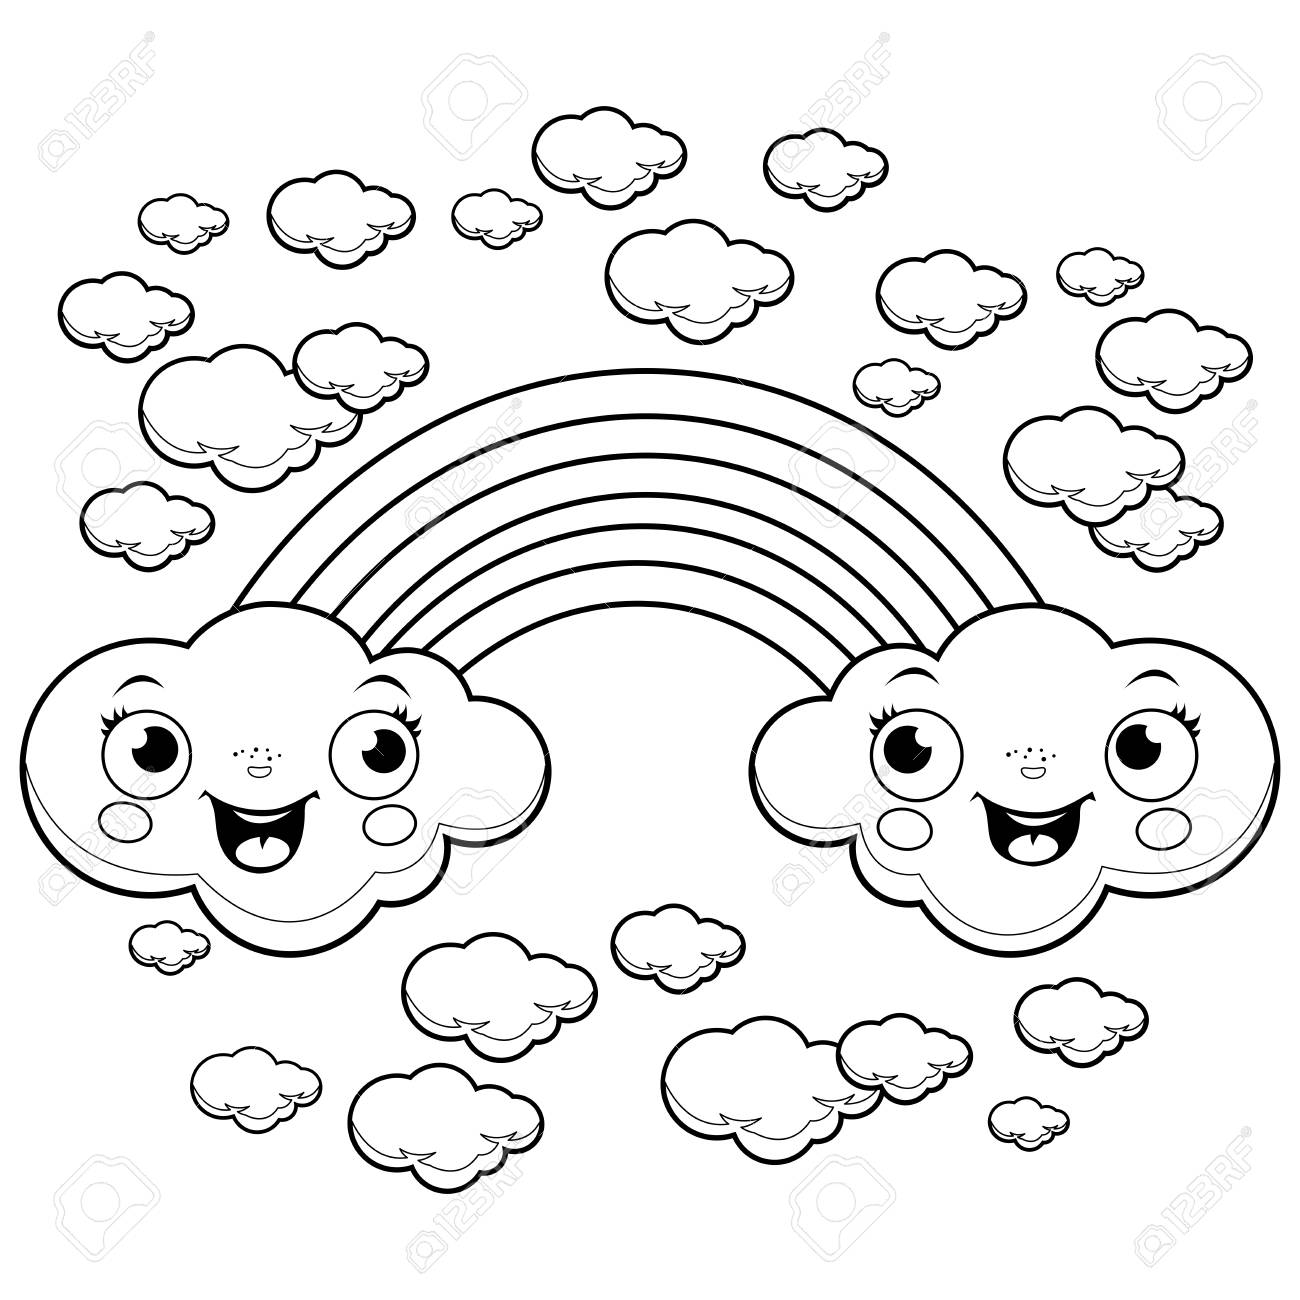 A Rainbow And Clouds In The Sky Black And White Coloring Page